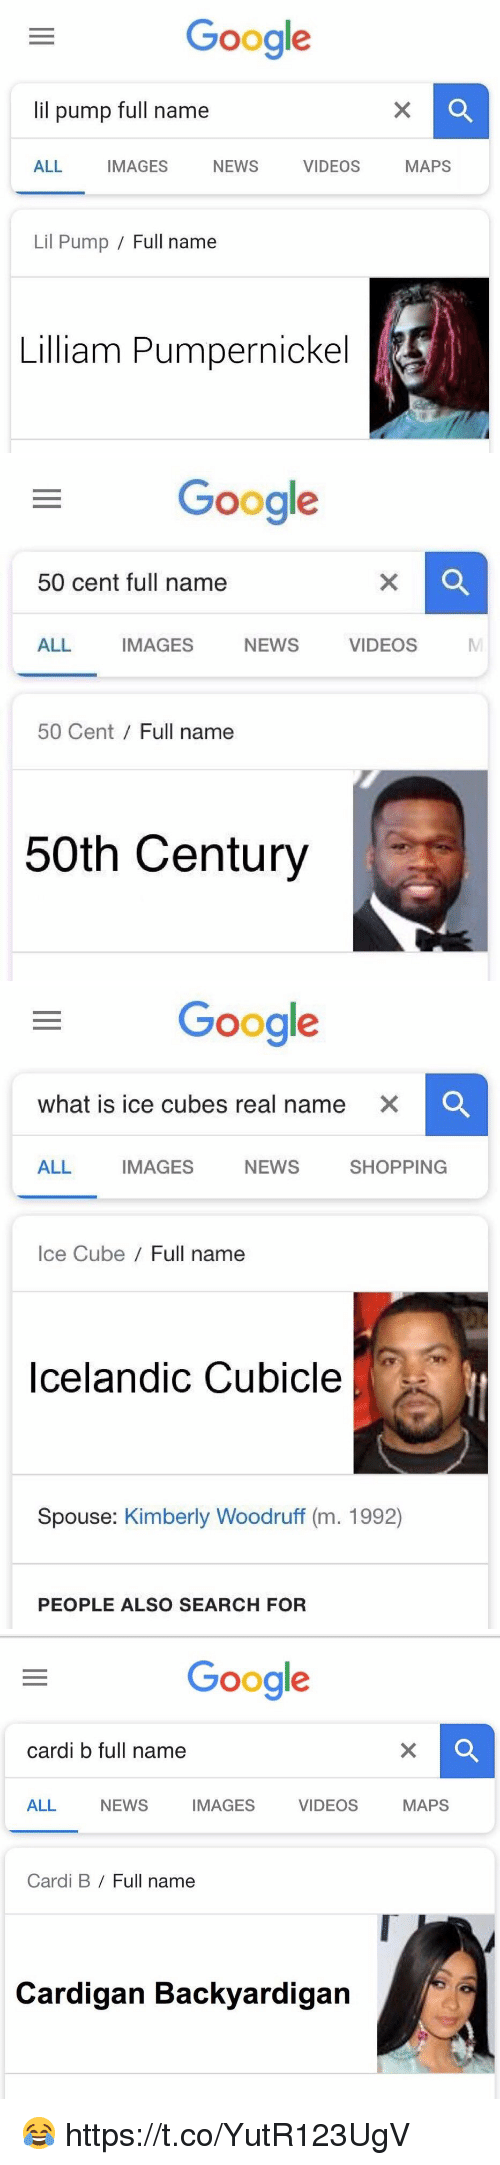 50 cent: Google  lil pump full name  ALL IMAGES NEWS VIDEOS MAPS  Lil Pump / Full name  Lilliam Pumpernickel   Google  50 cent full name  ALL IMAGES NEWS VIDEOS  MI  50 Cent Full name  50th Century   Google  what is ice cubes real name  XC  ALL IMAGES NEWS SHOPPING  Ice Cube/ Full name  Icelandic Cubicle  Spouse: Kimberly Woodruff (m. 1992)  PEOPLE ALSO SEARCH FOR   Google  cardi b full name  ALL NEWS IMAGES VIDEOS MAPS  Cardi B / Full name  Cardigan Backyardigan 😂 https://t.co/YutR123UgV